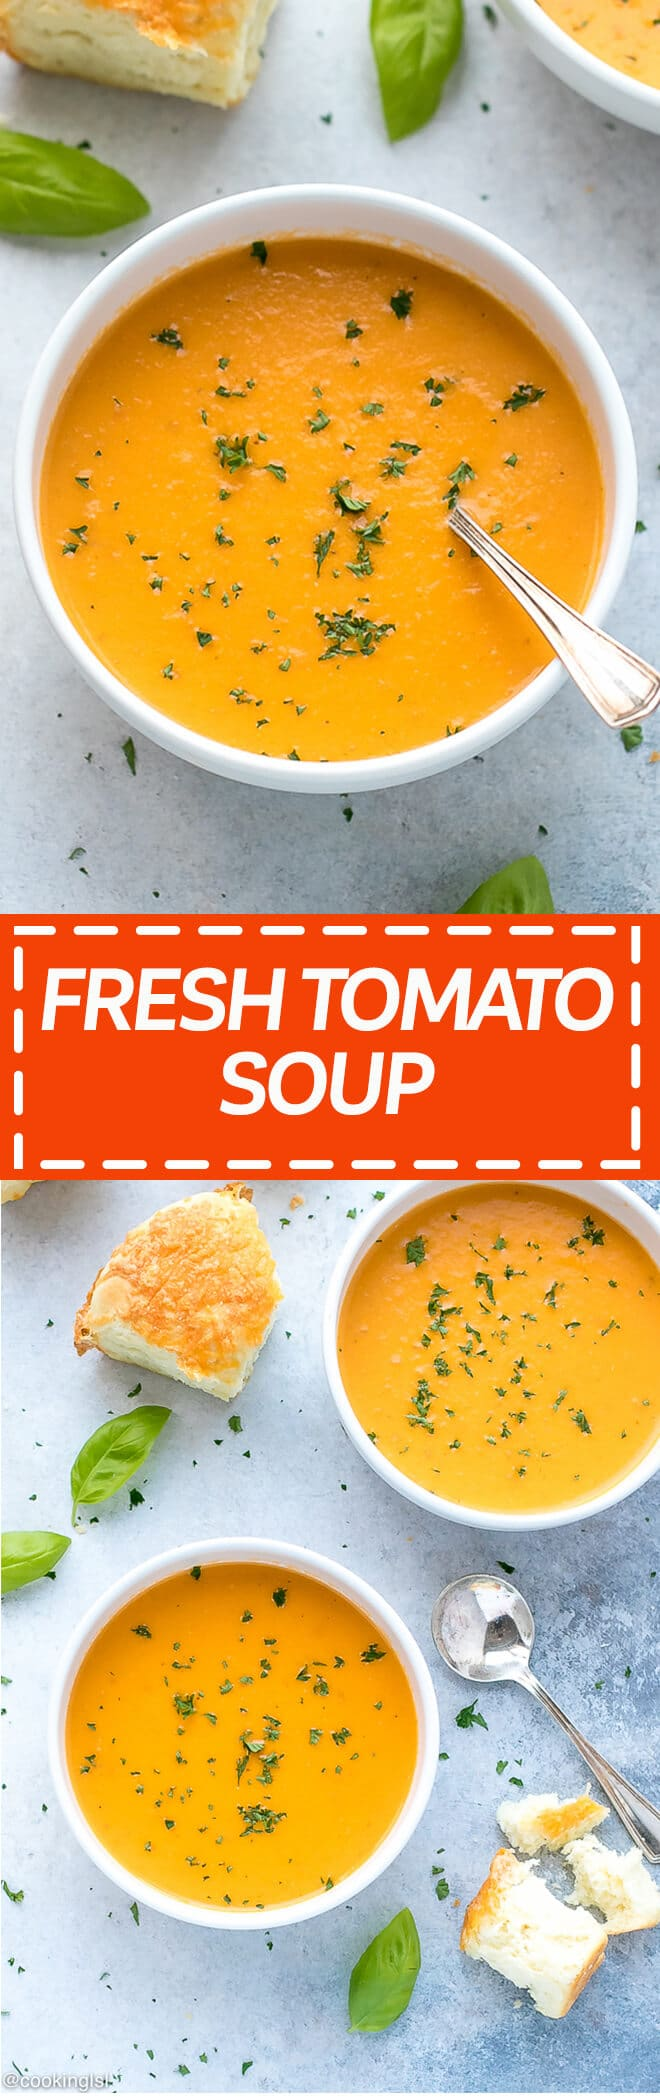 Fresh Tomato Basil Soup - quick and simple to make, made with fresh basil and tomatoes, great with a side of crusty bread or grilled cheese sandwiches.